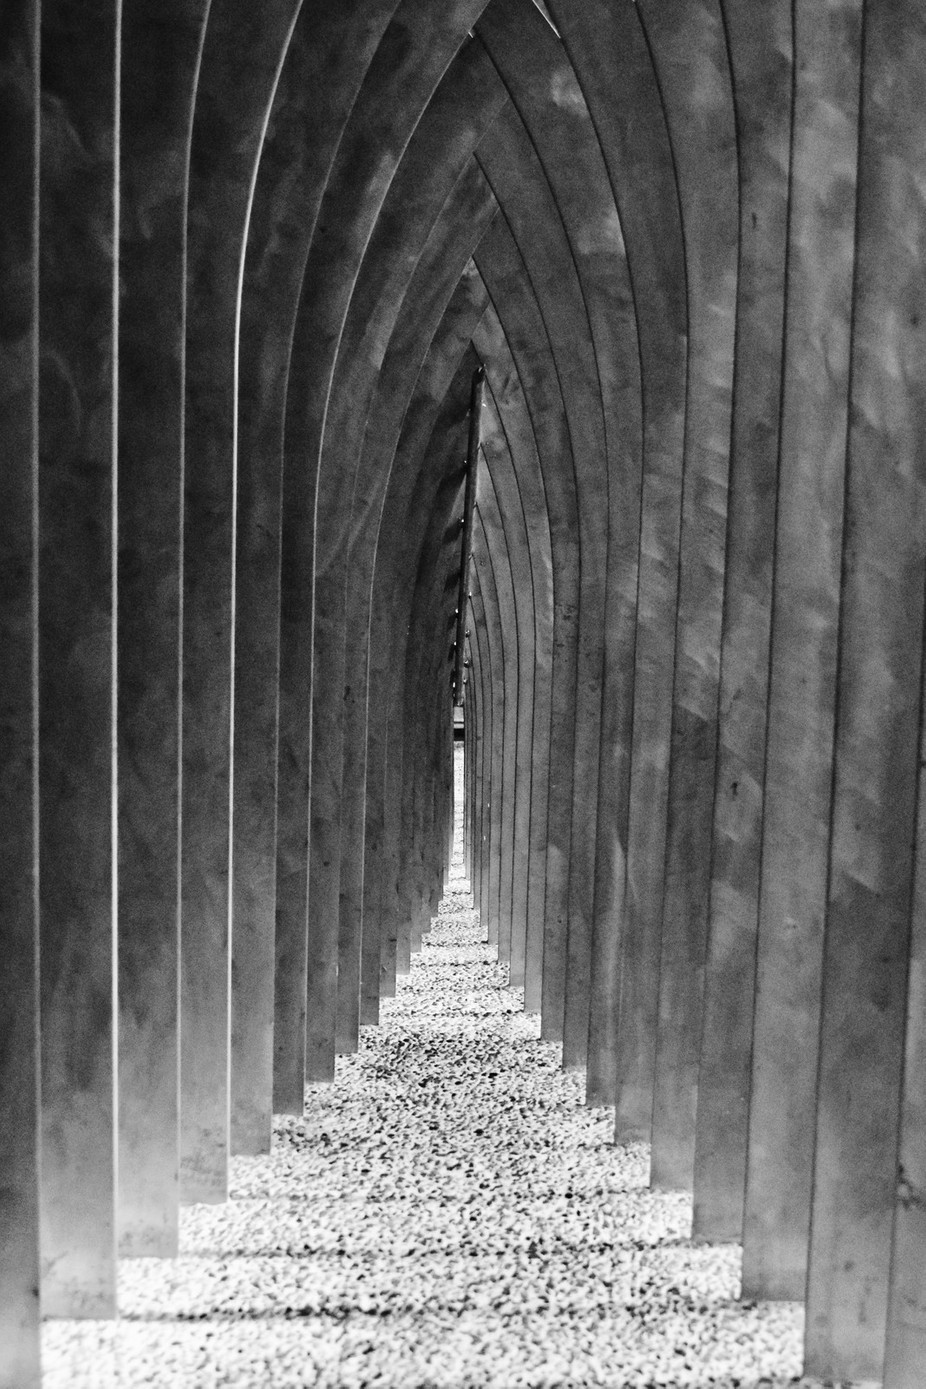 Arches by hafeedz - Composing with Patterns Photo Contest